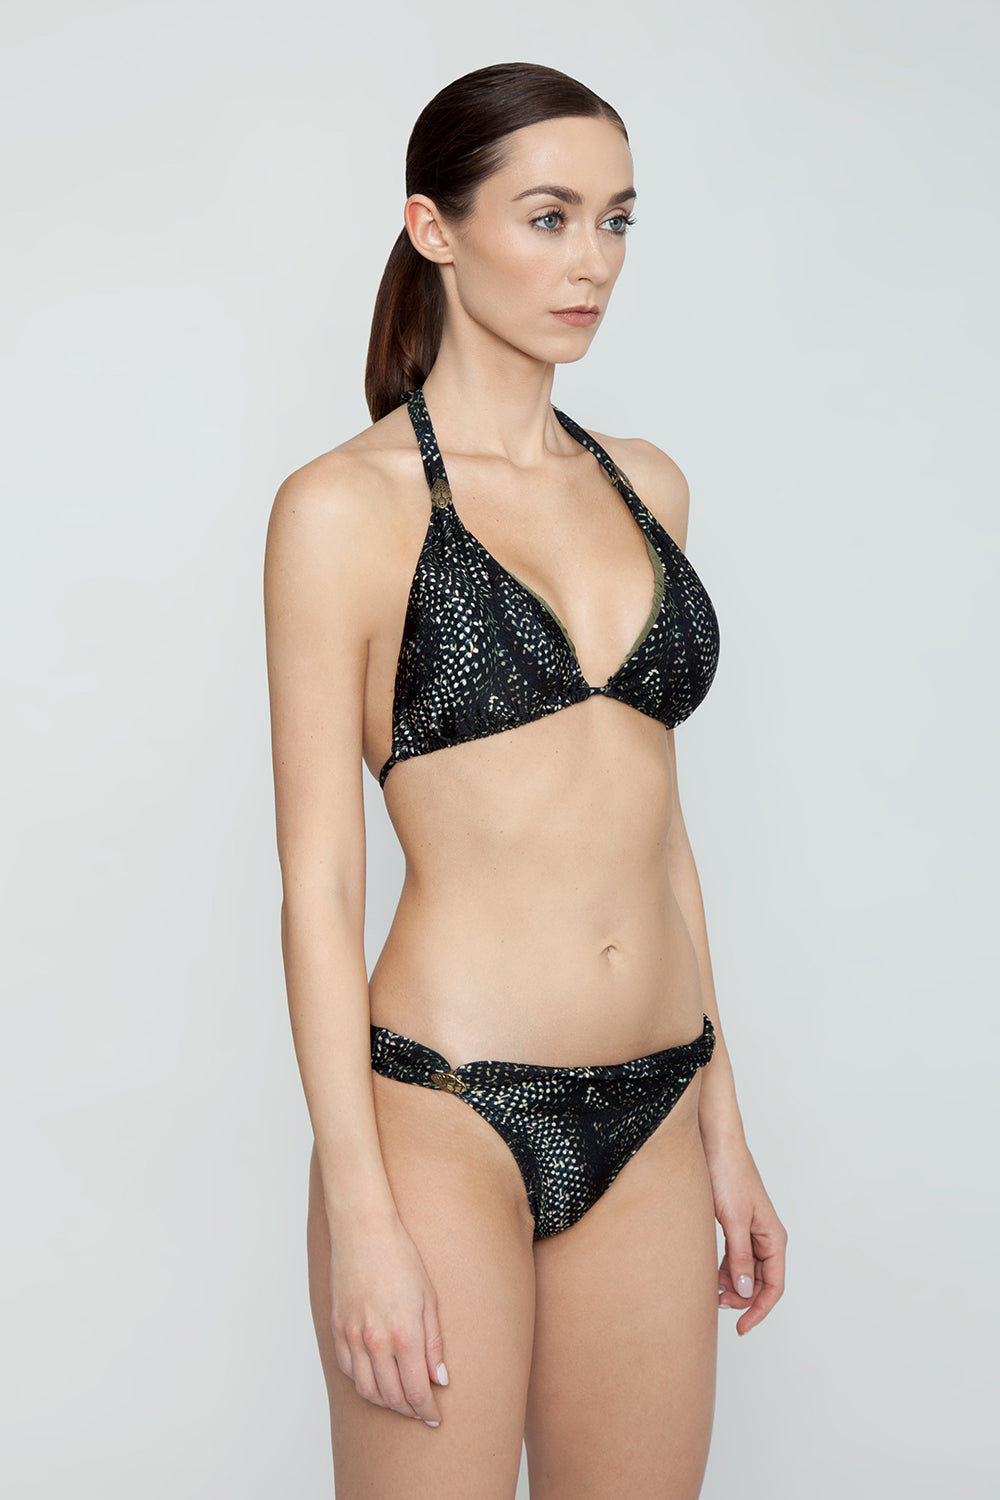 ROSA CHA Carla Strappy Triangle Bikini Top - Black Snake Print Bikini Top | Black Snake Print| Rosa Cha Carla Strappy Bikini Top - Black Snake Print Fabulous black snake print triangle bikini top with fabric loop detail. Elegant snake printed swim fabric will have you dreaming of romantic hideaways and secret beaches on far-off shores. Fabric loop sliders on straps can be slid up for fuller coverage or scrunched down to show more skin. Thick halter straps and string tie back closure are adjustable and allow you to customize the fit of this bikini top Front View